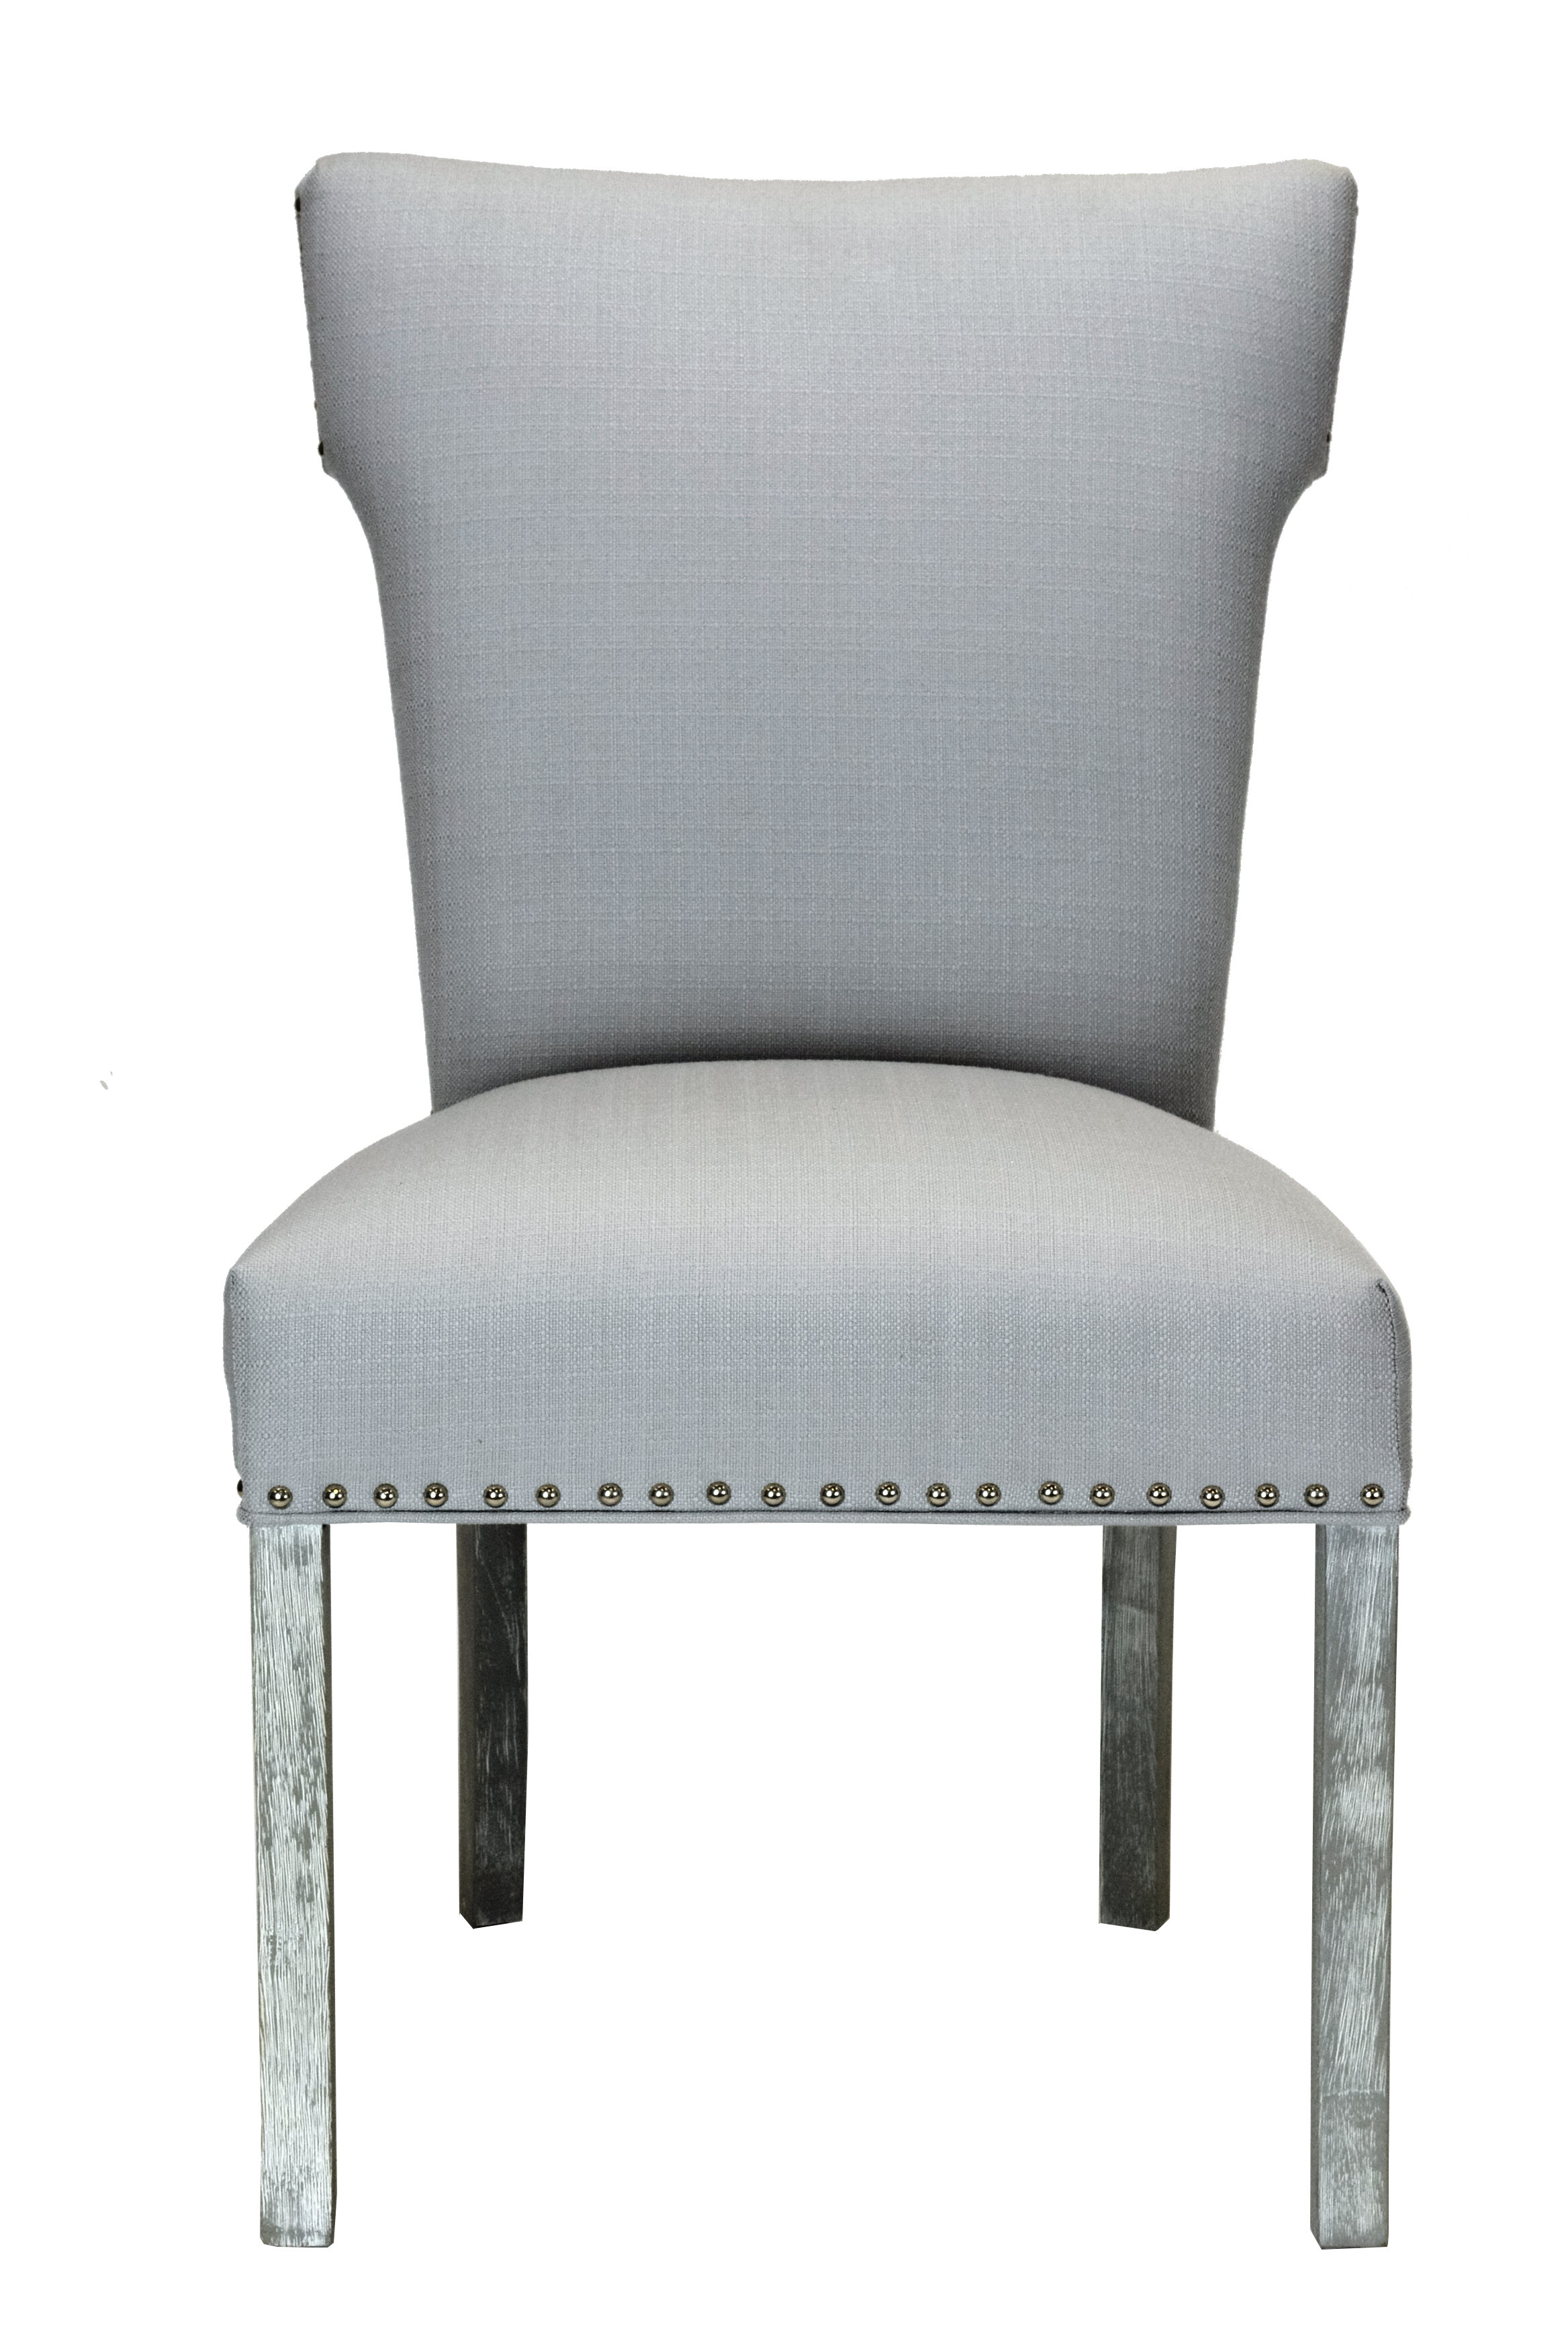 Exceptionnel Darby Home Co Dougherty Platinum Upholstered Dining Chair   Wayfair